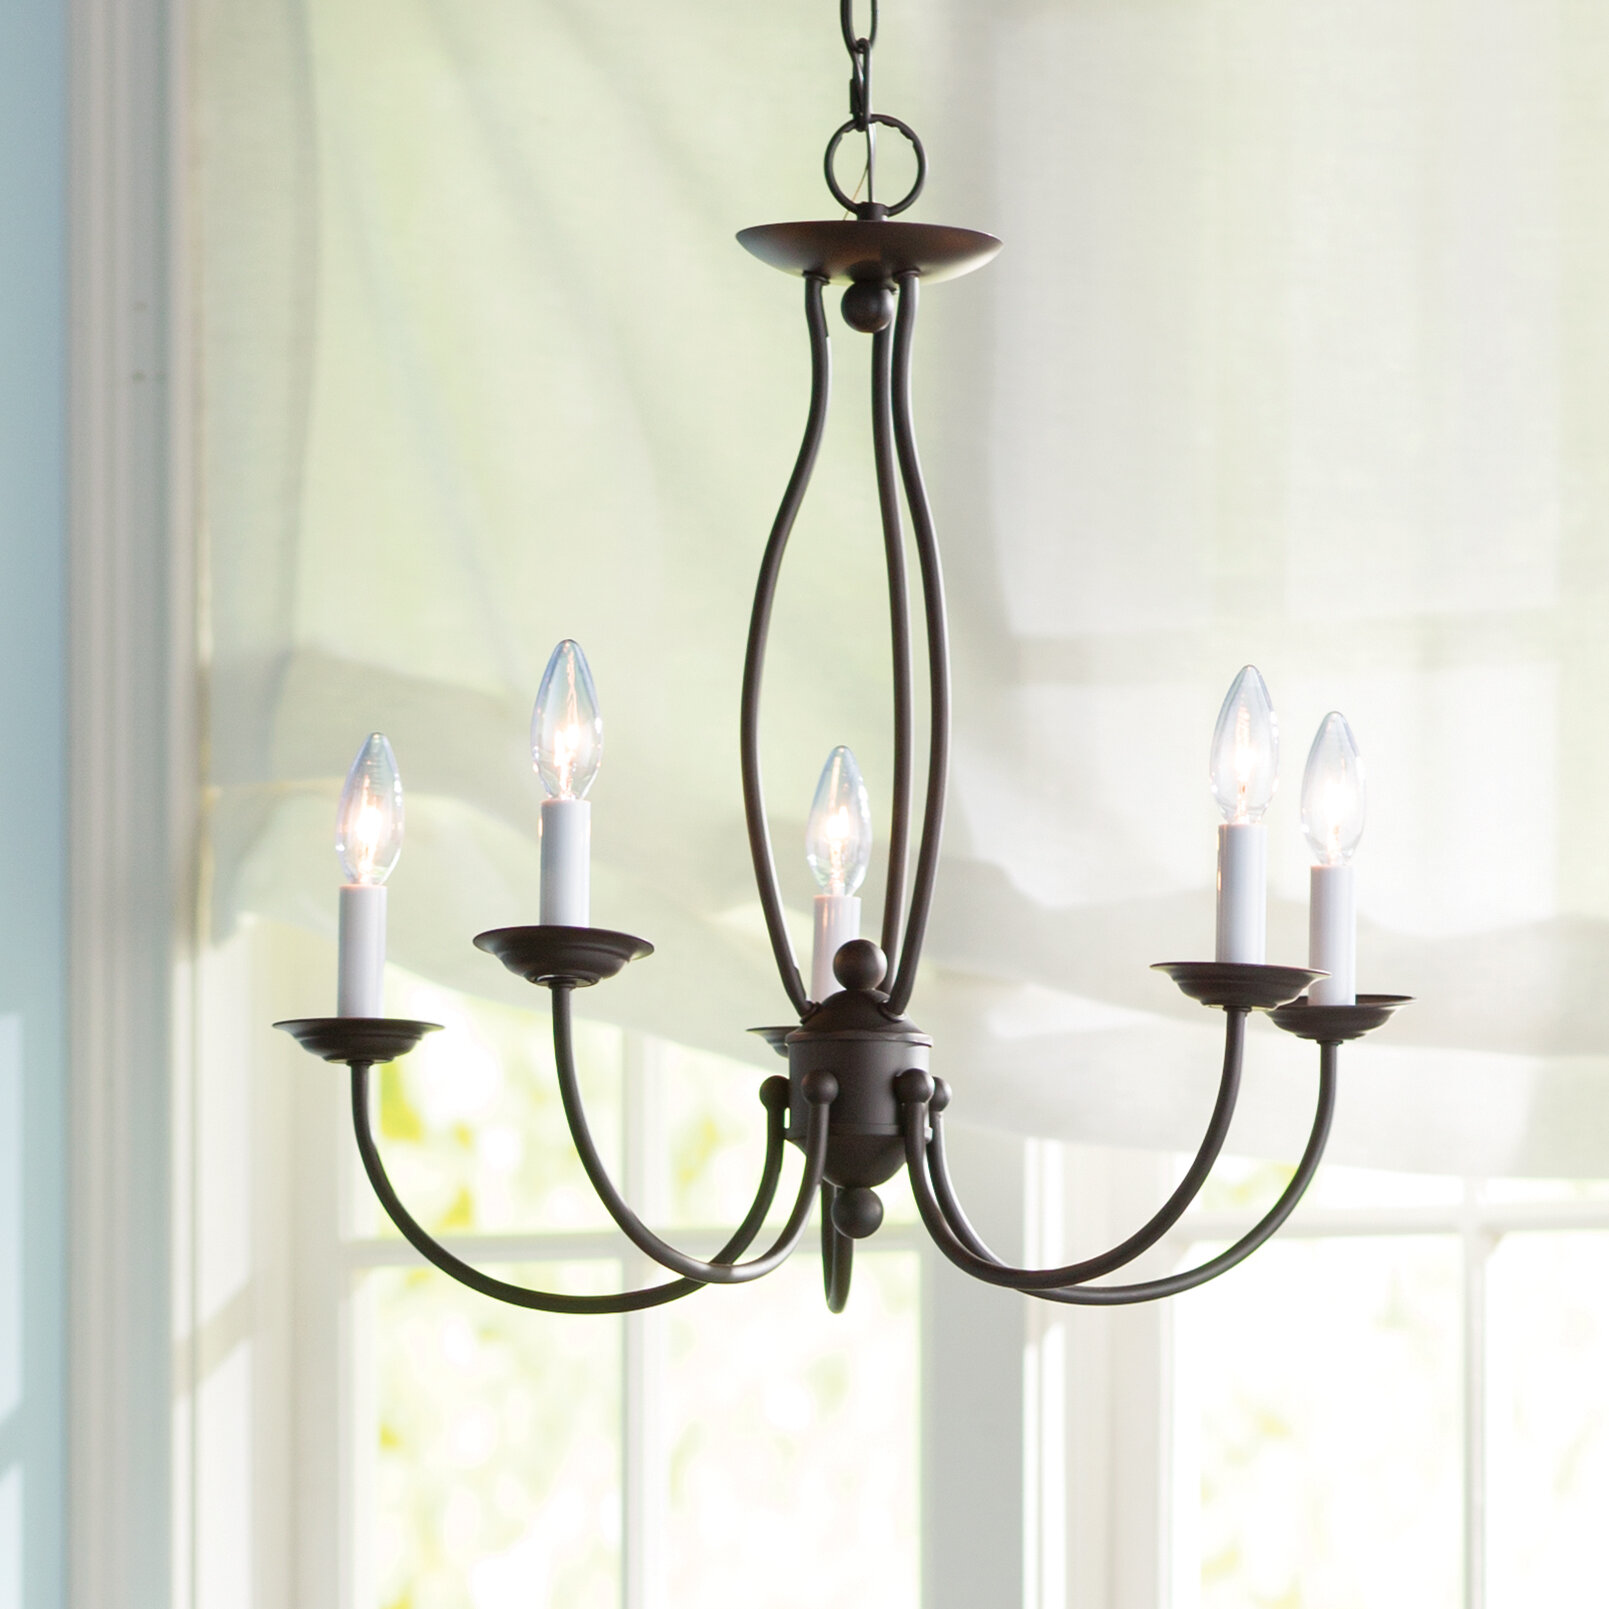 Three Posts Williams 5 Light Candle Style Chandelier & Reviews